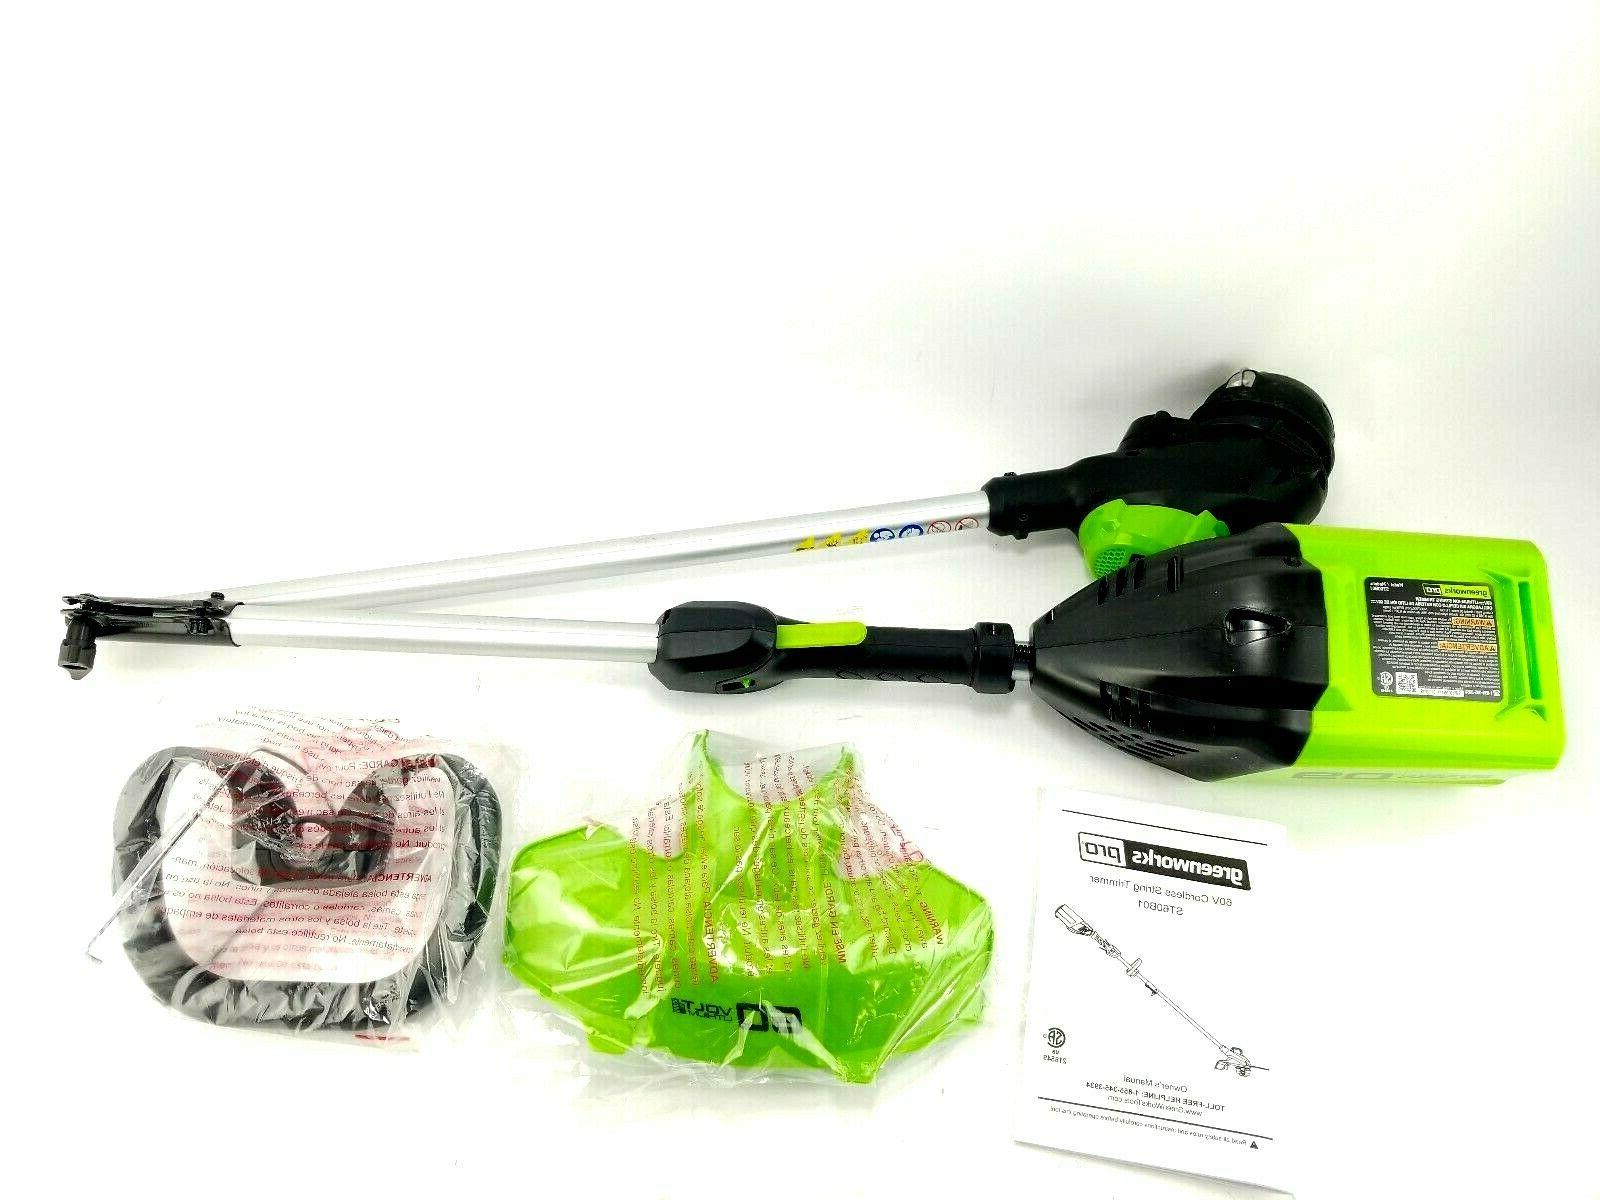 Greenworks Pro Max Cordless Trimmer Tool